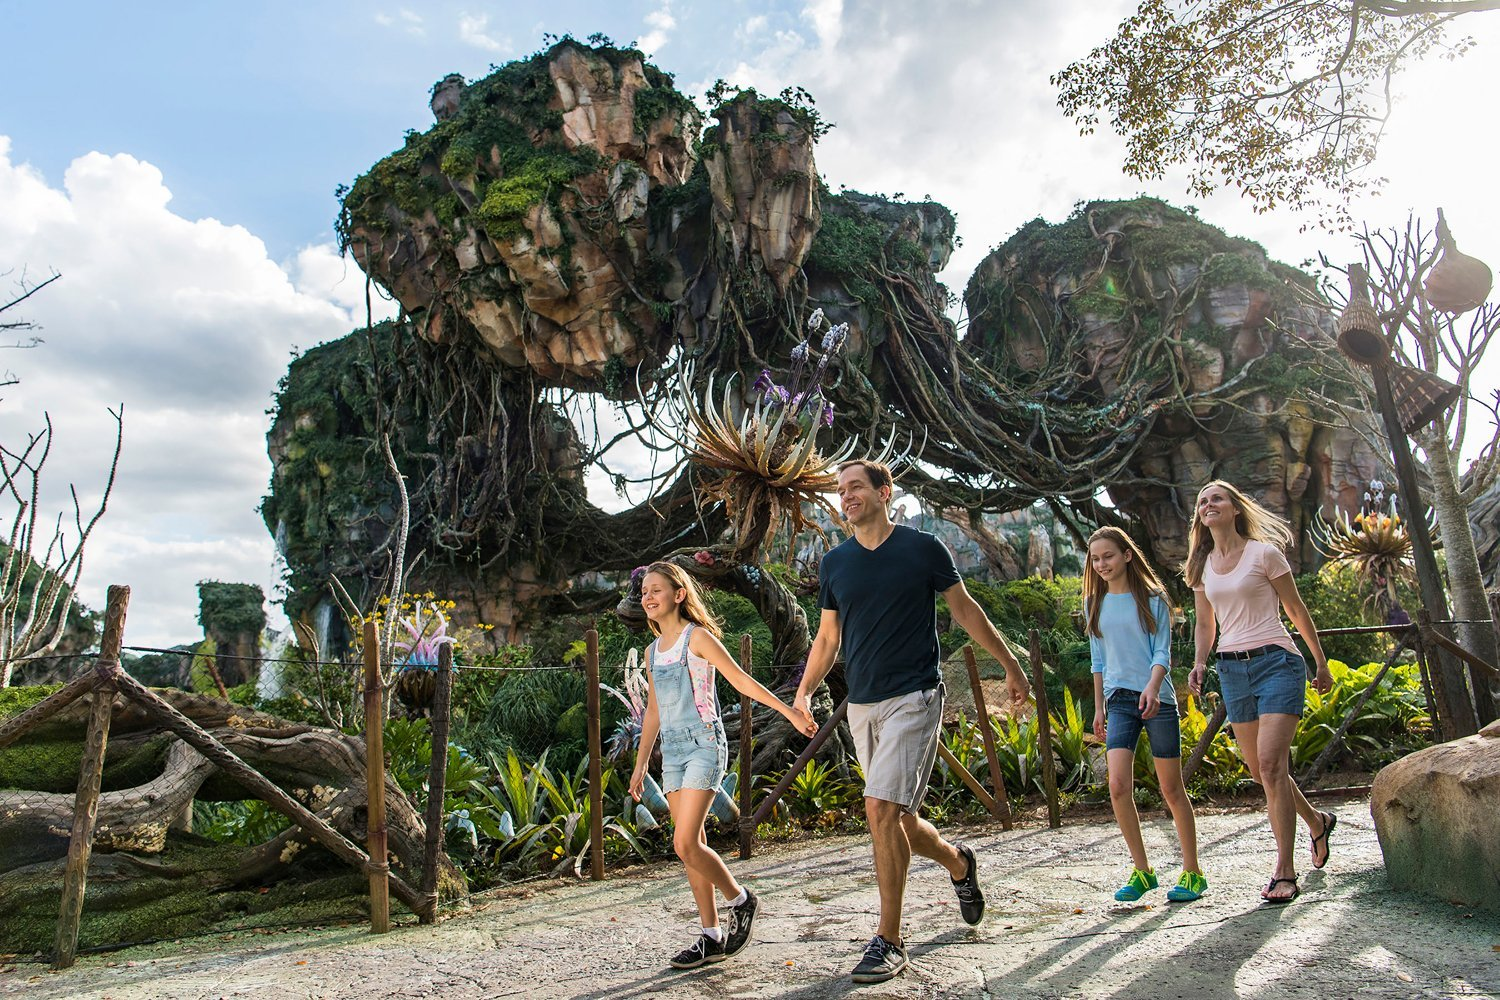 Training Trends from the Disney Trenches<br> Behind the Scenes at Pandora – The World of Avatar